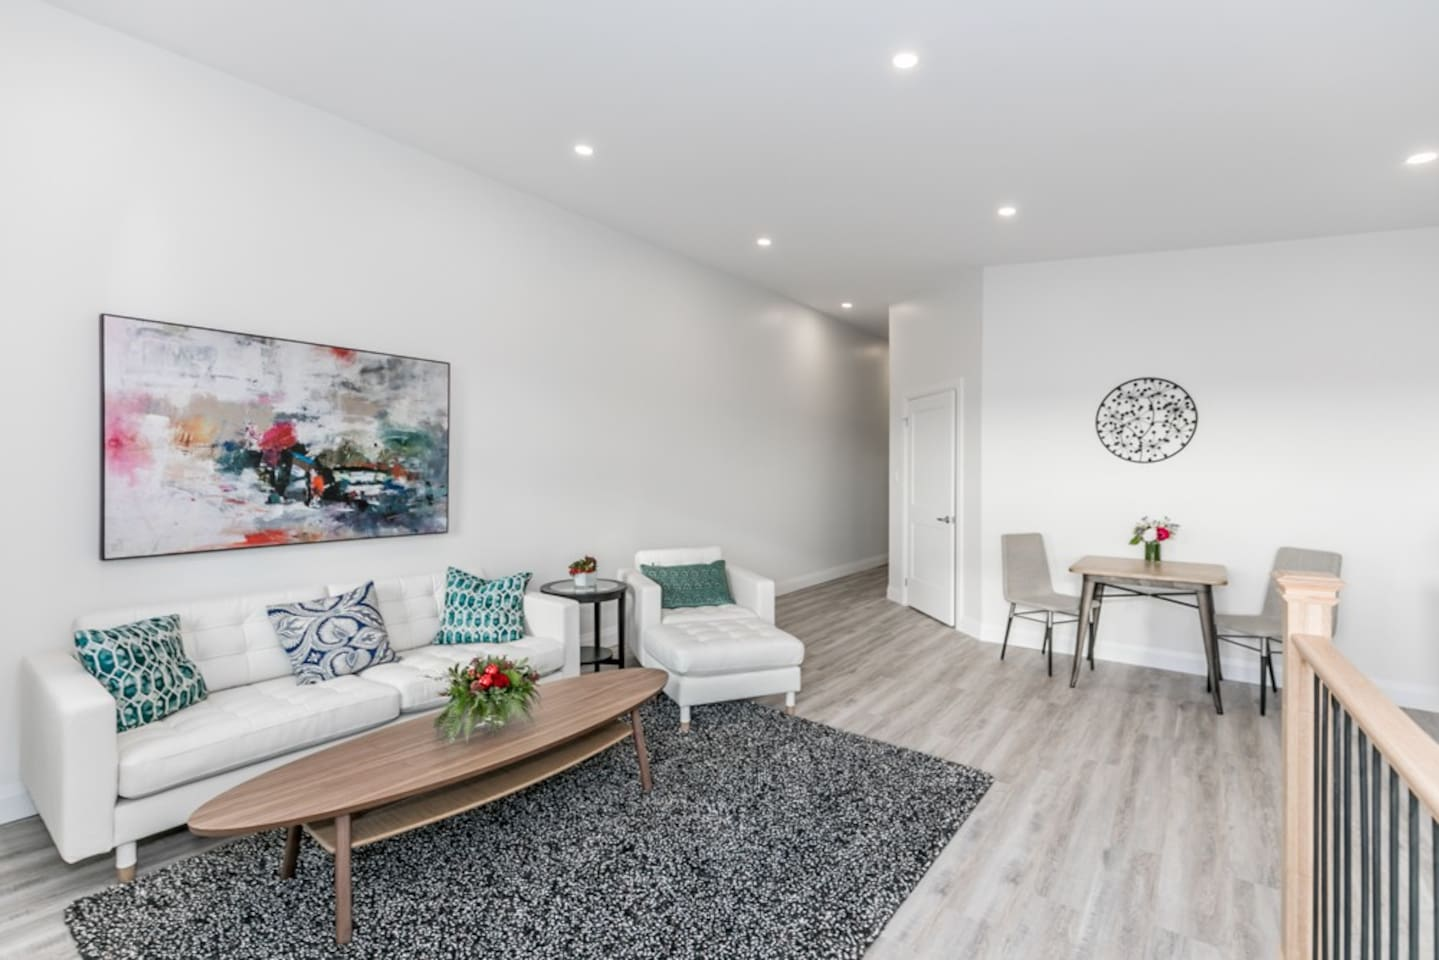 Downtown Angles - Apartments for Rent in Barrie, Ontario, Canada